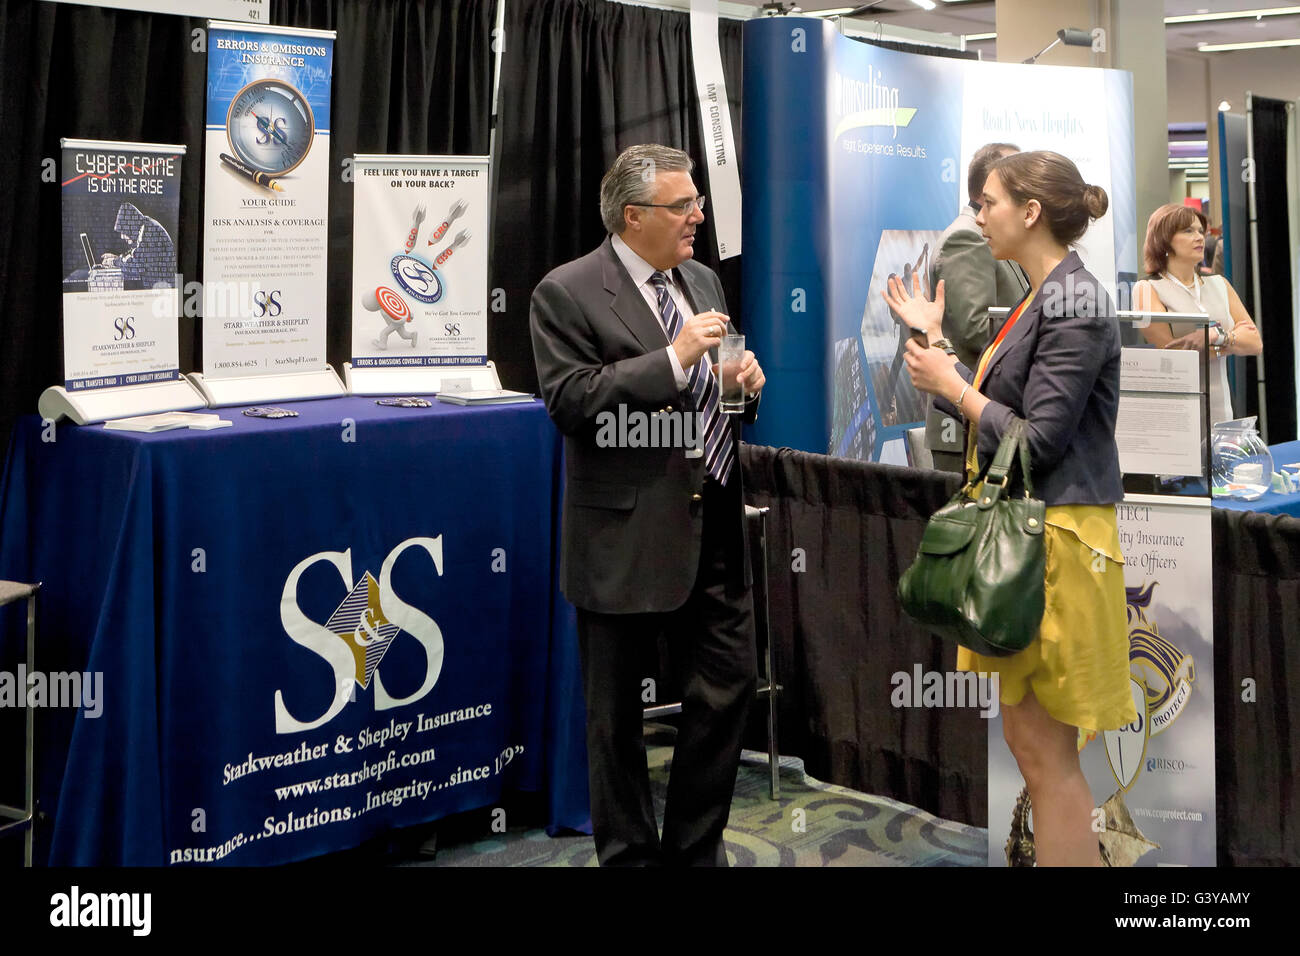 Starkweather & Shepley Insurance Brokerage In. booth at a business expo - USA - Stock Image